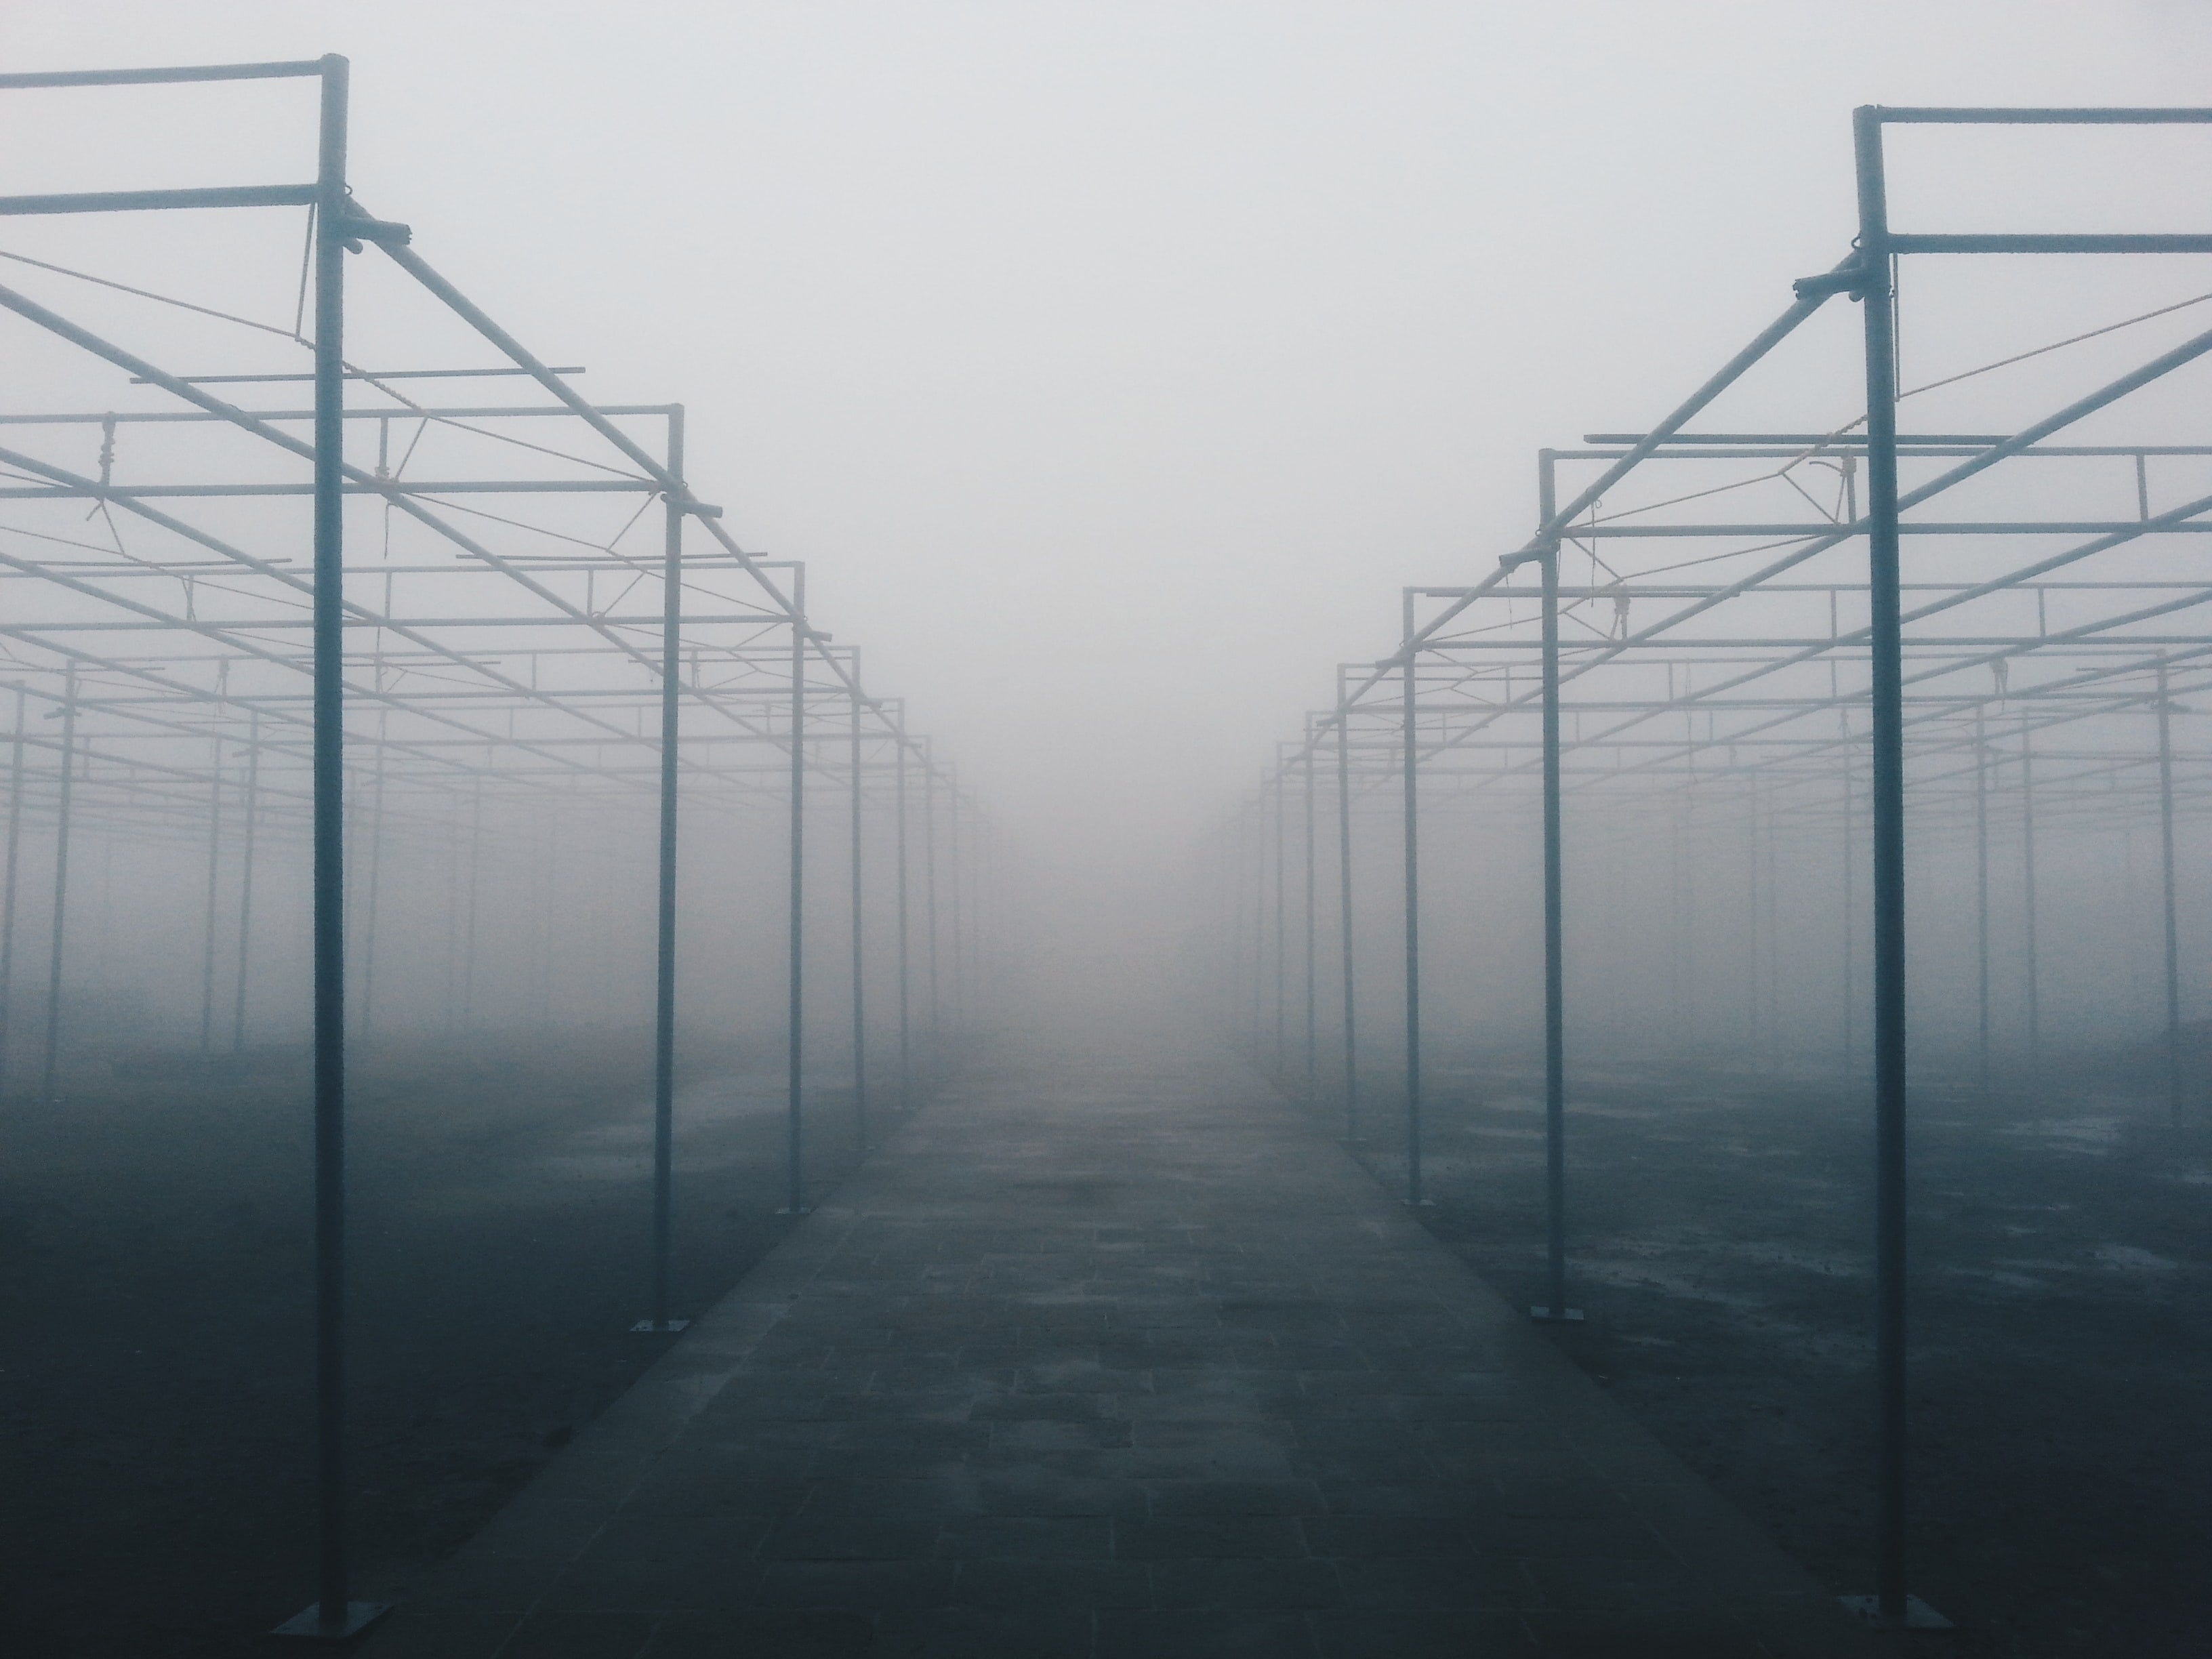 foggy concrete area with tubes